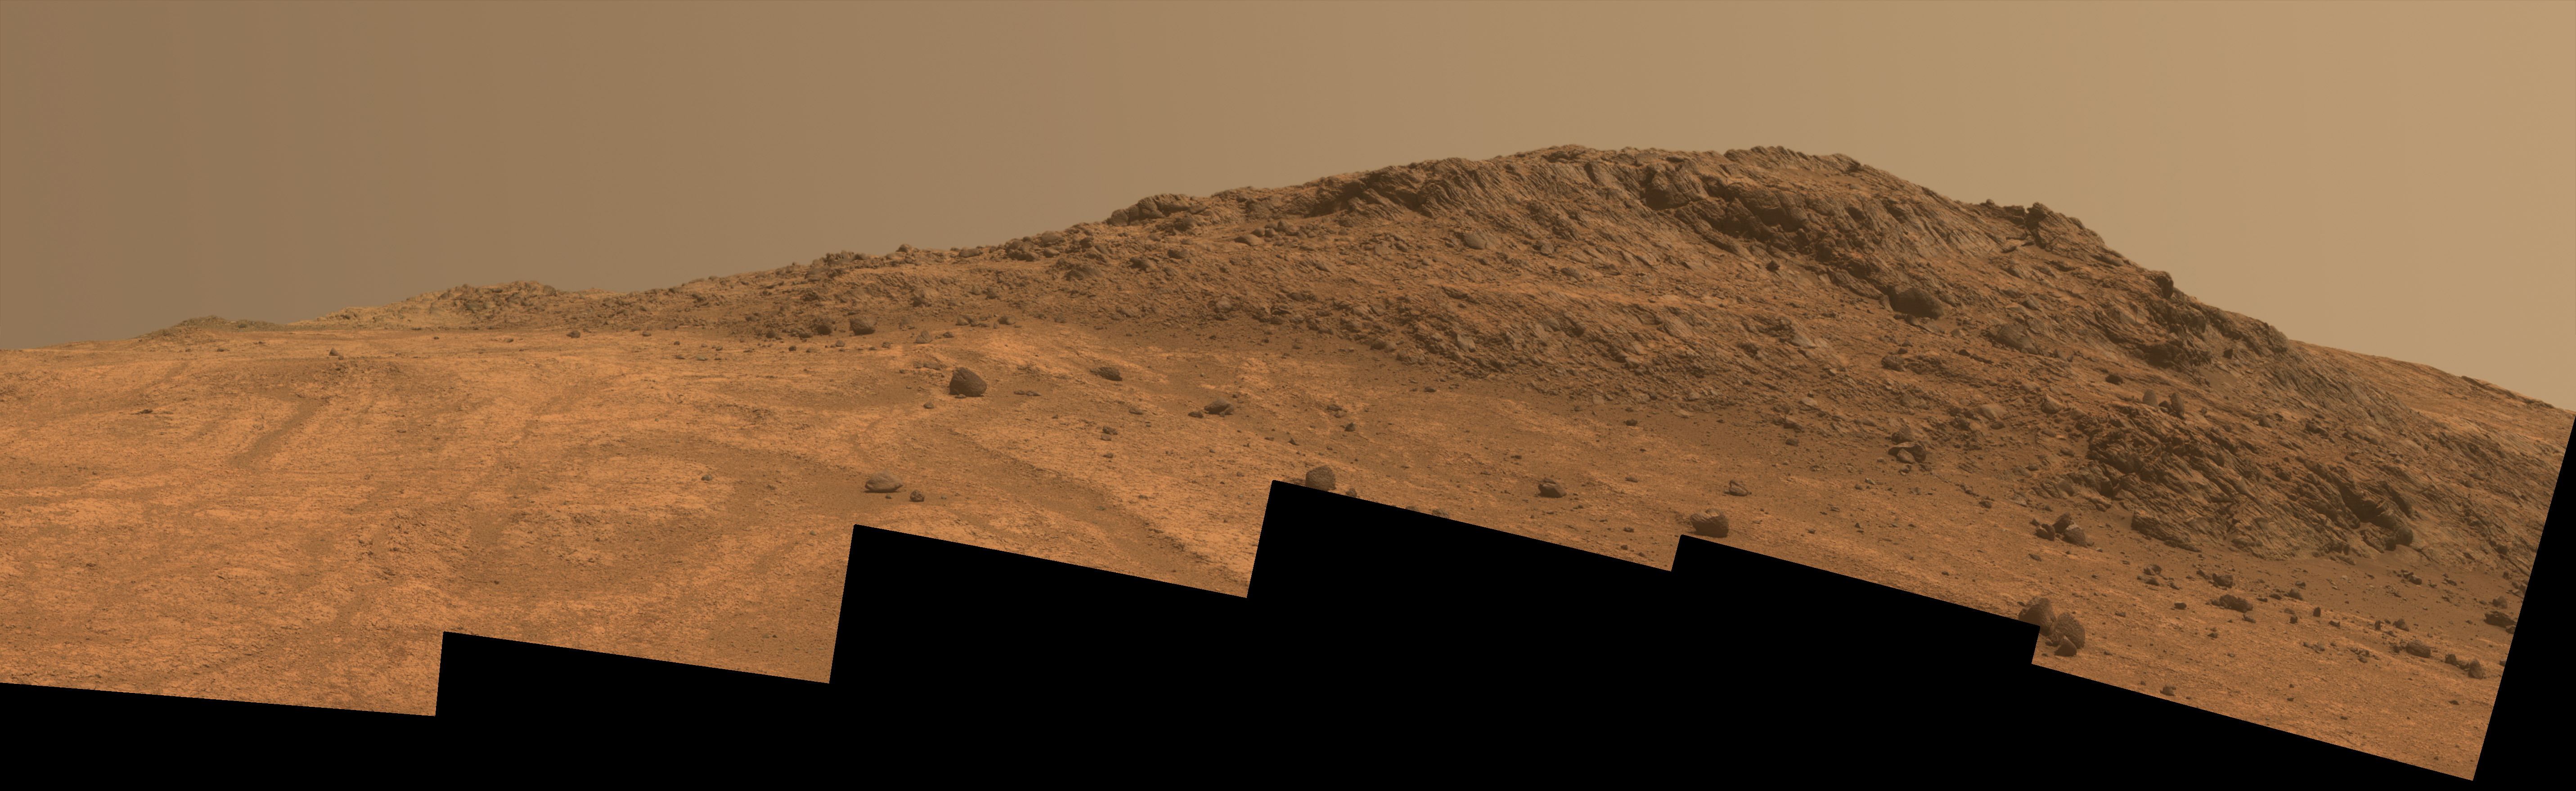 Opportunity Mars Rover Preparing for Active Winter | Mars News